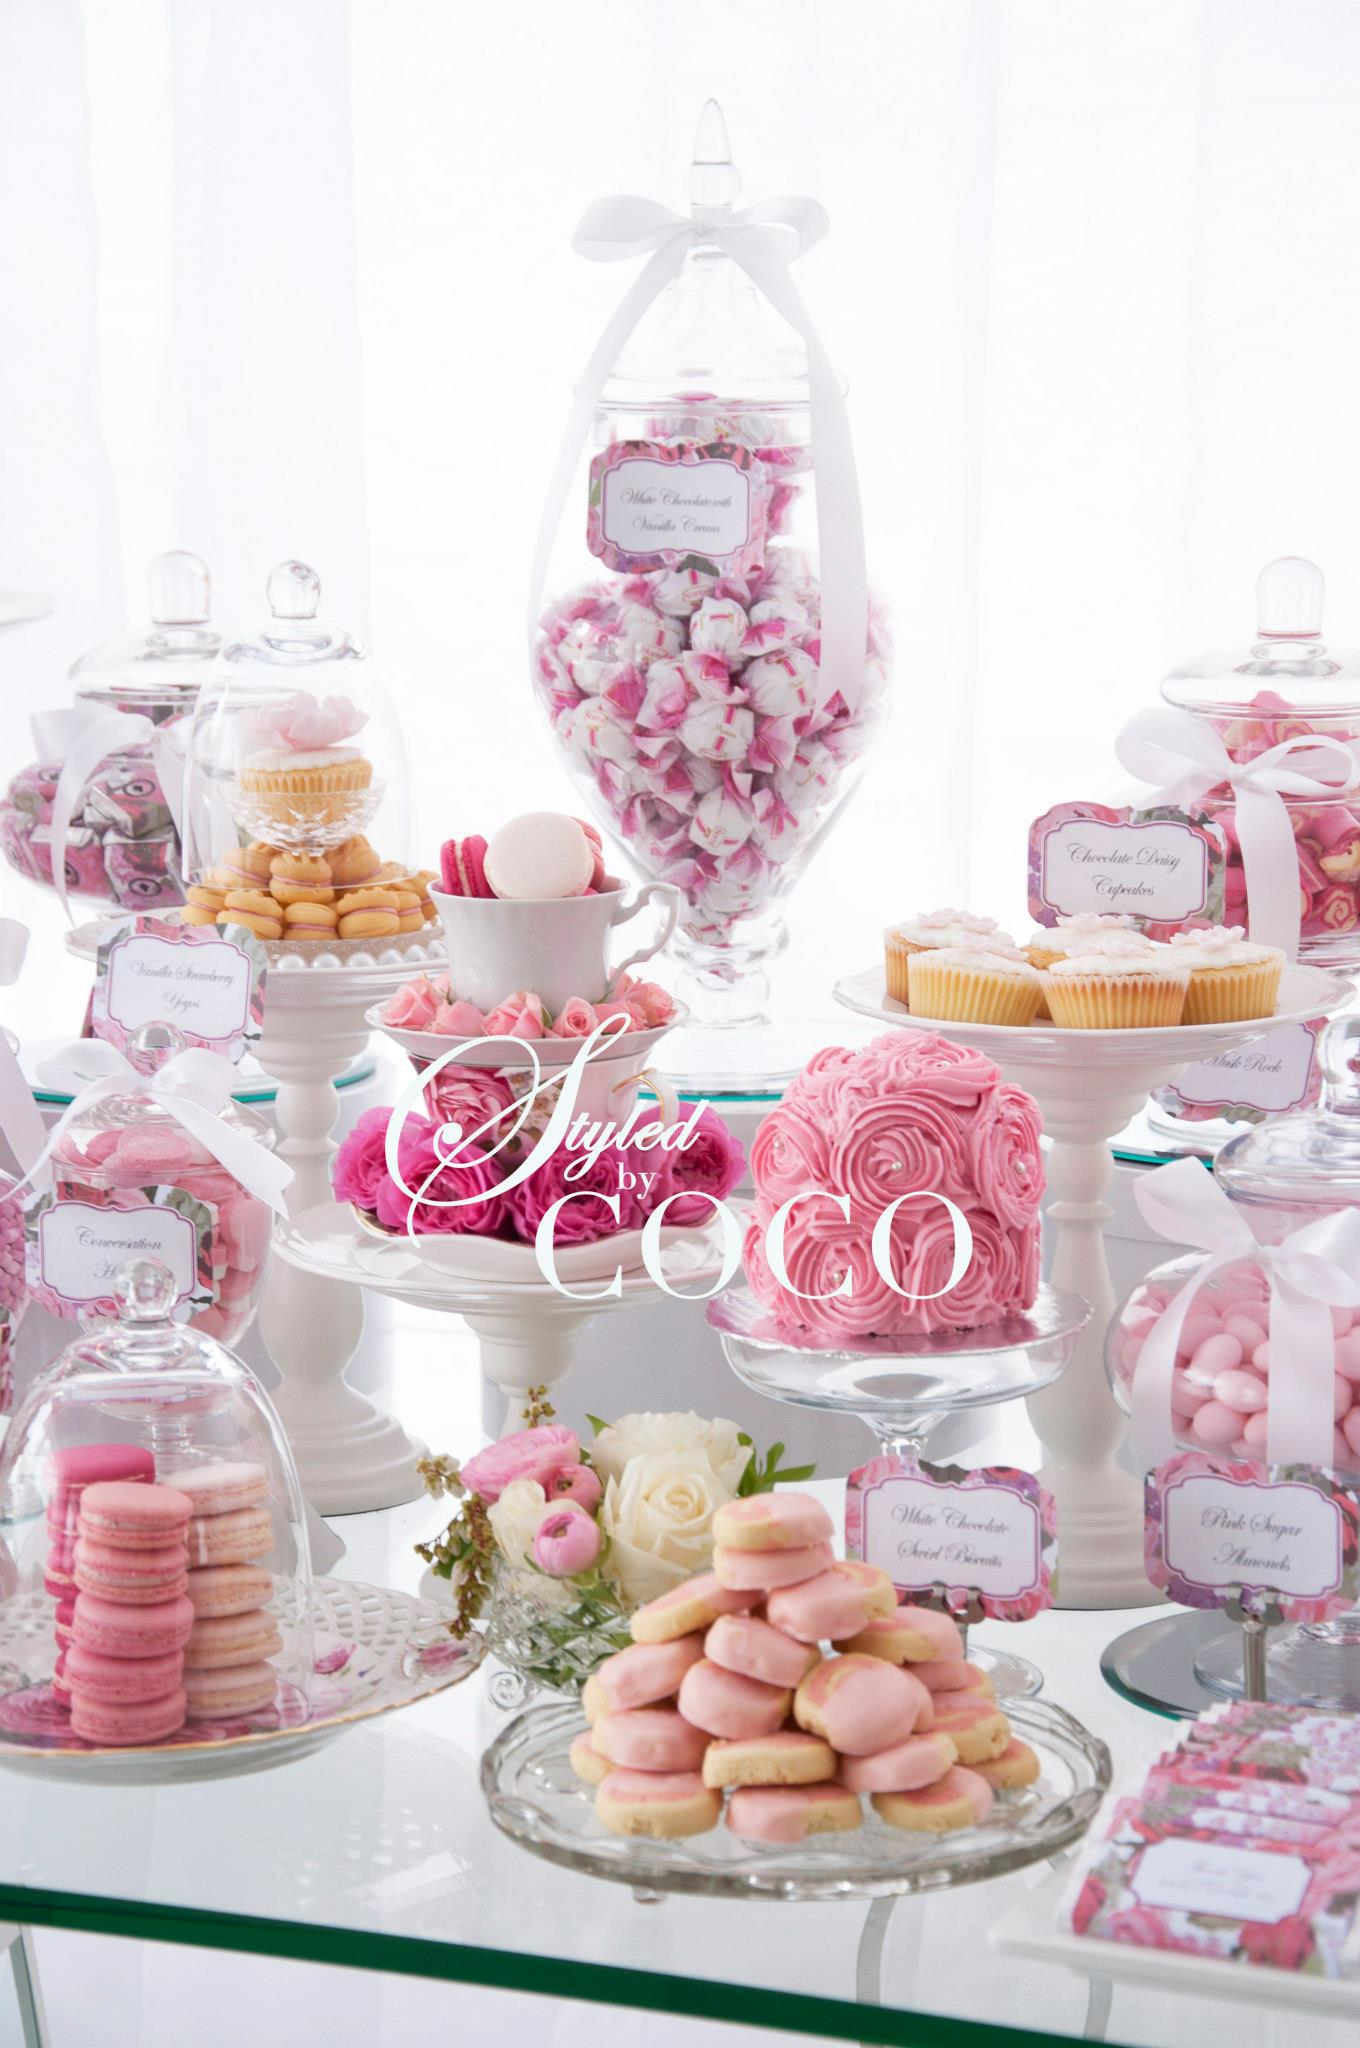 pink-kitchen-tea-lolly-buffet Kitchen Bridal Shower Theme With Ideas on bridal shower picnic theme, diy kitchen theme ideas, bridal shower shower theme, beach kitchen theme ideas, bridal shower travel theme party, bridal shower party decoration ideas, bridal shower wedding decoration idea,